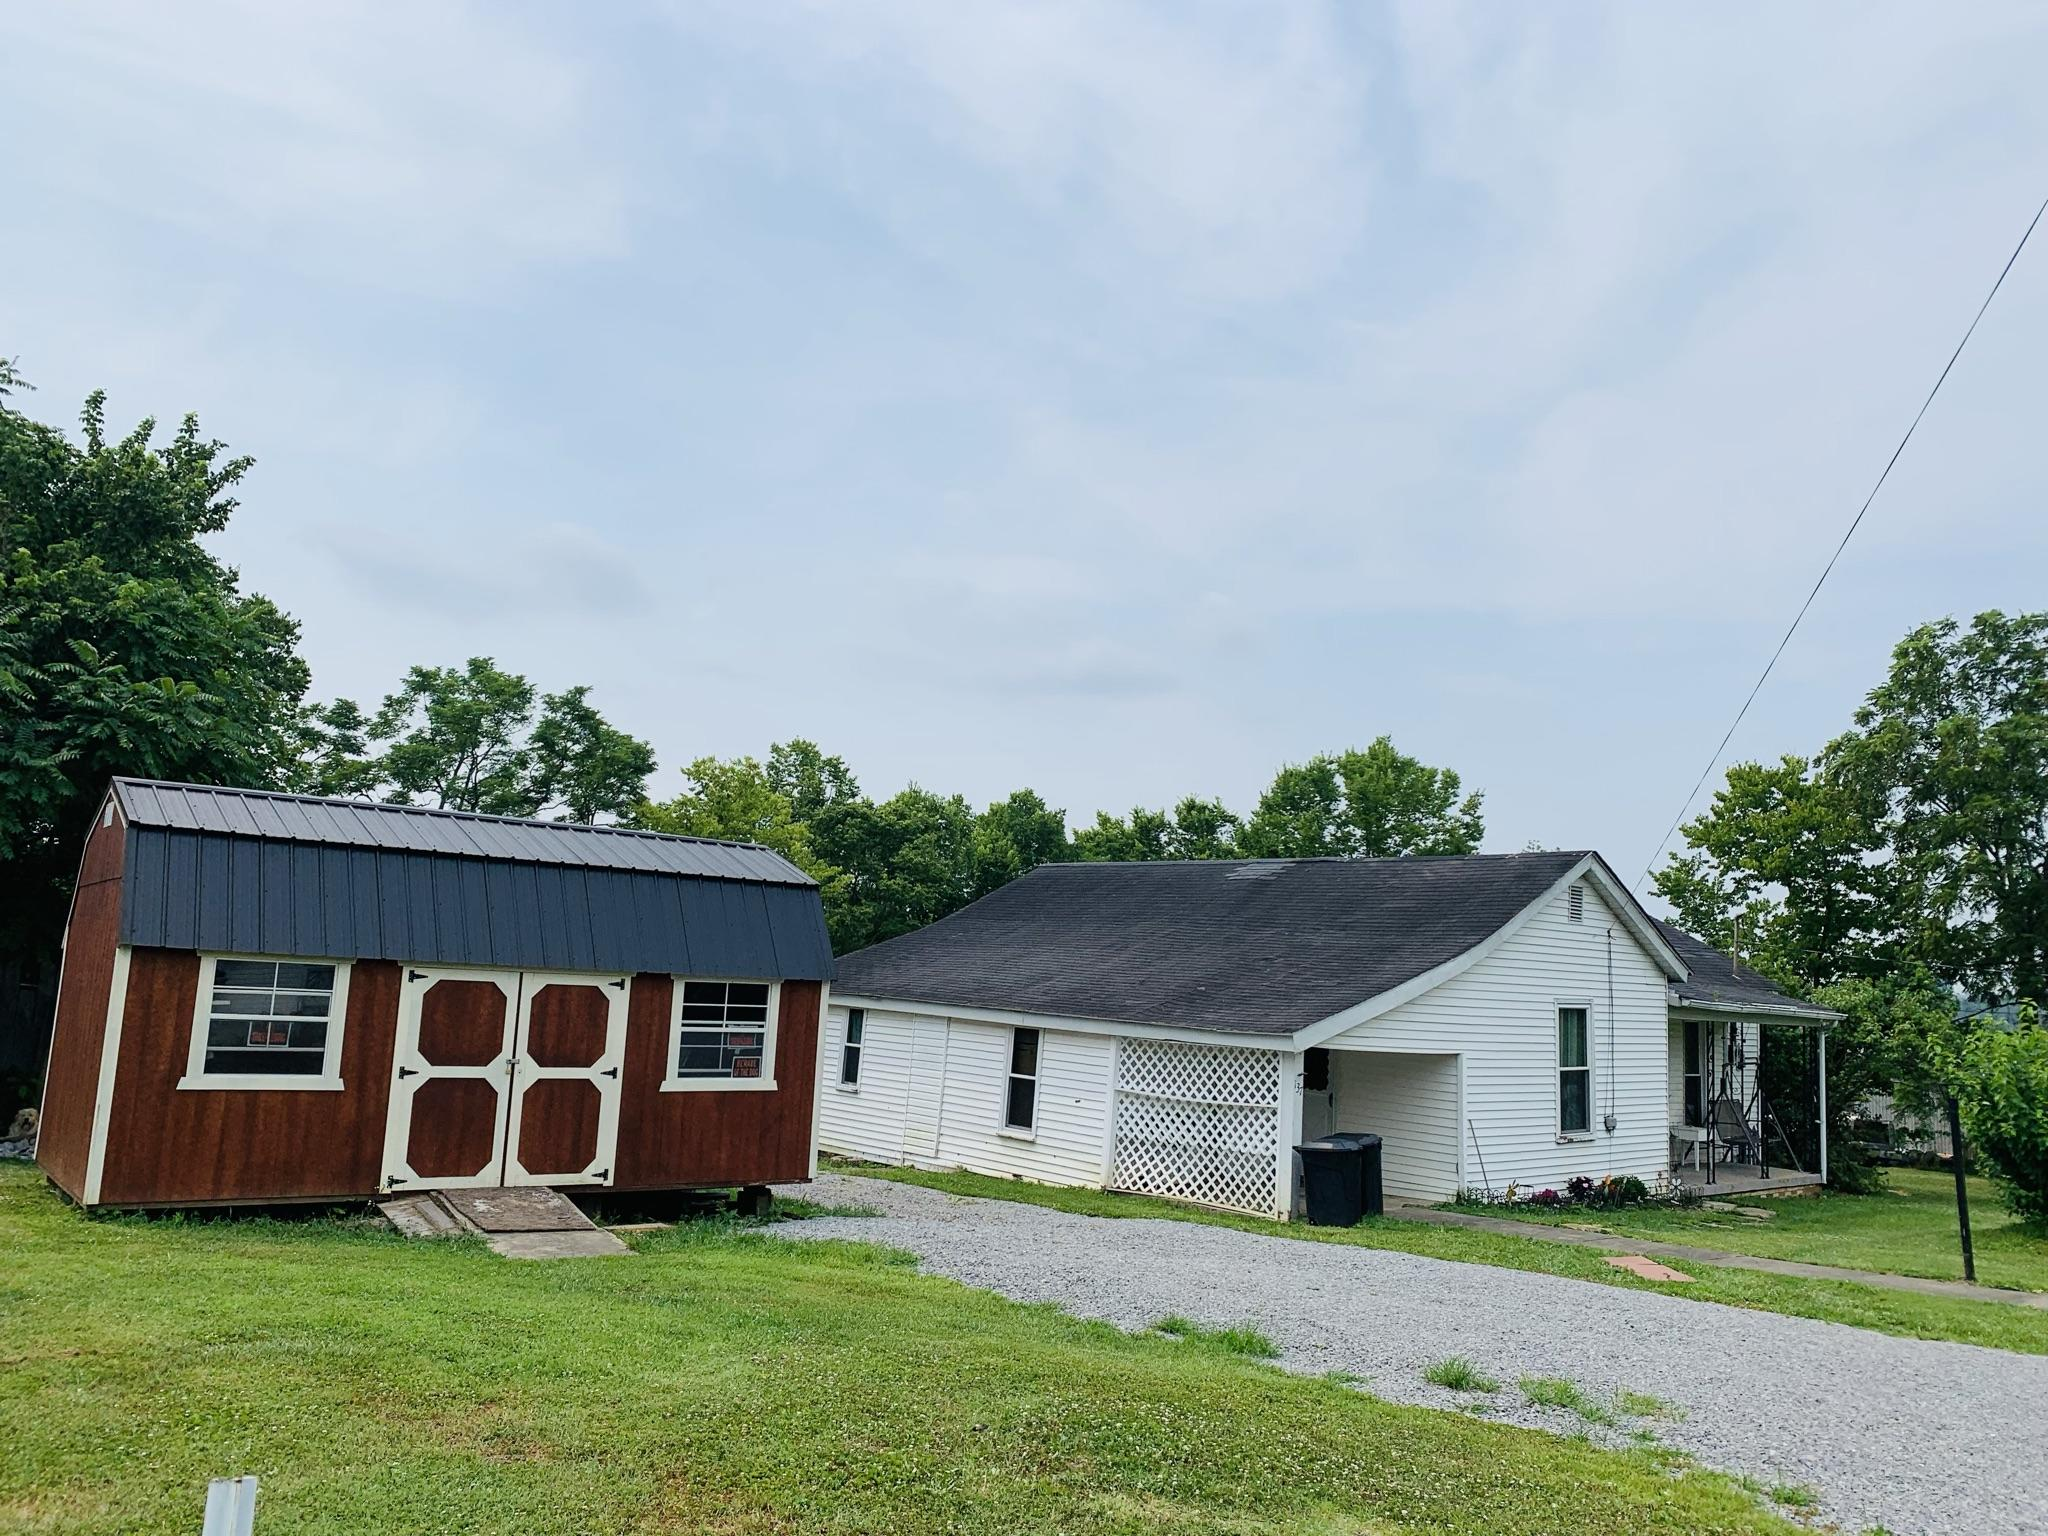 137 Rice Lane, Stanford, Kentucky 40484, 3 Bedrooms Bedrooms, ,1 BathroomBathrooms,Residential,For Sale,Rice,20114952